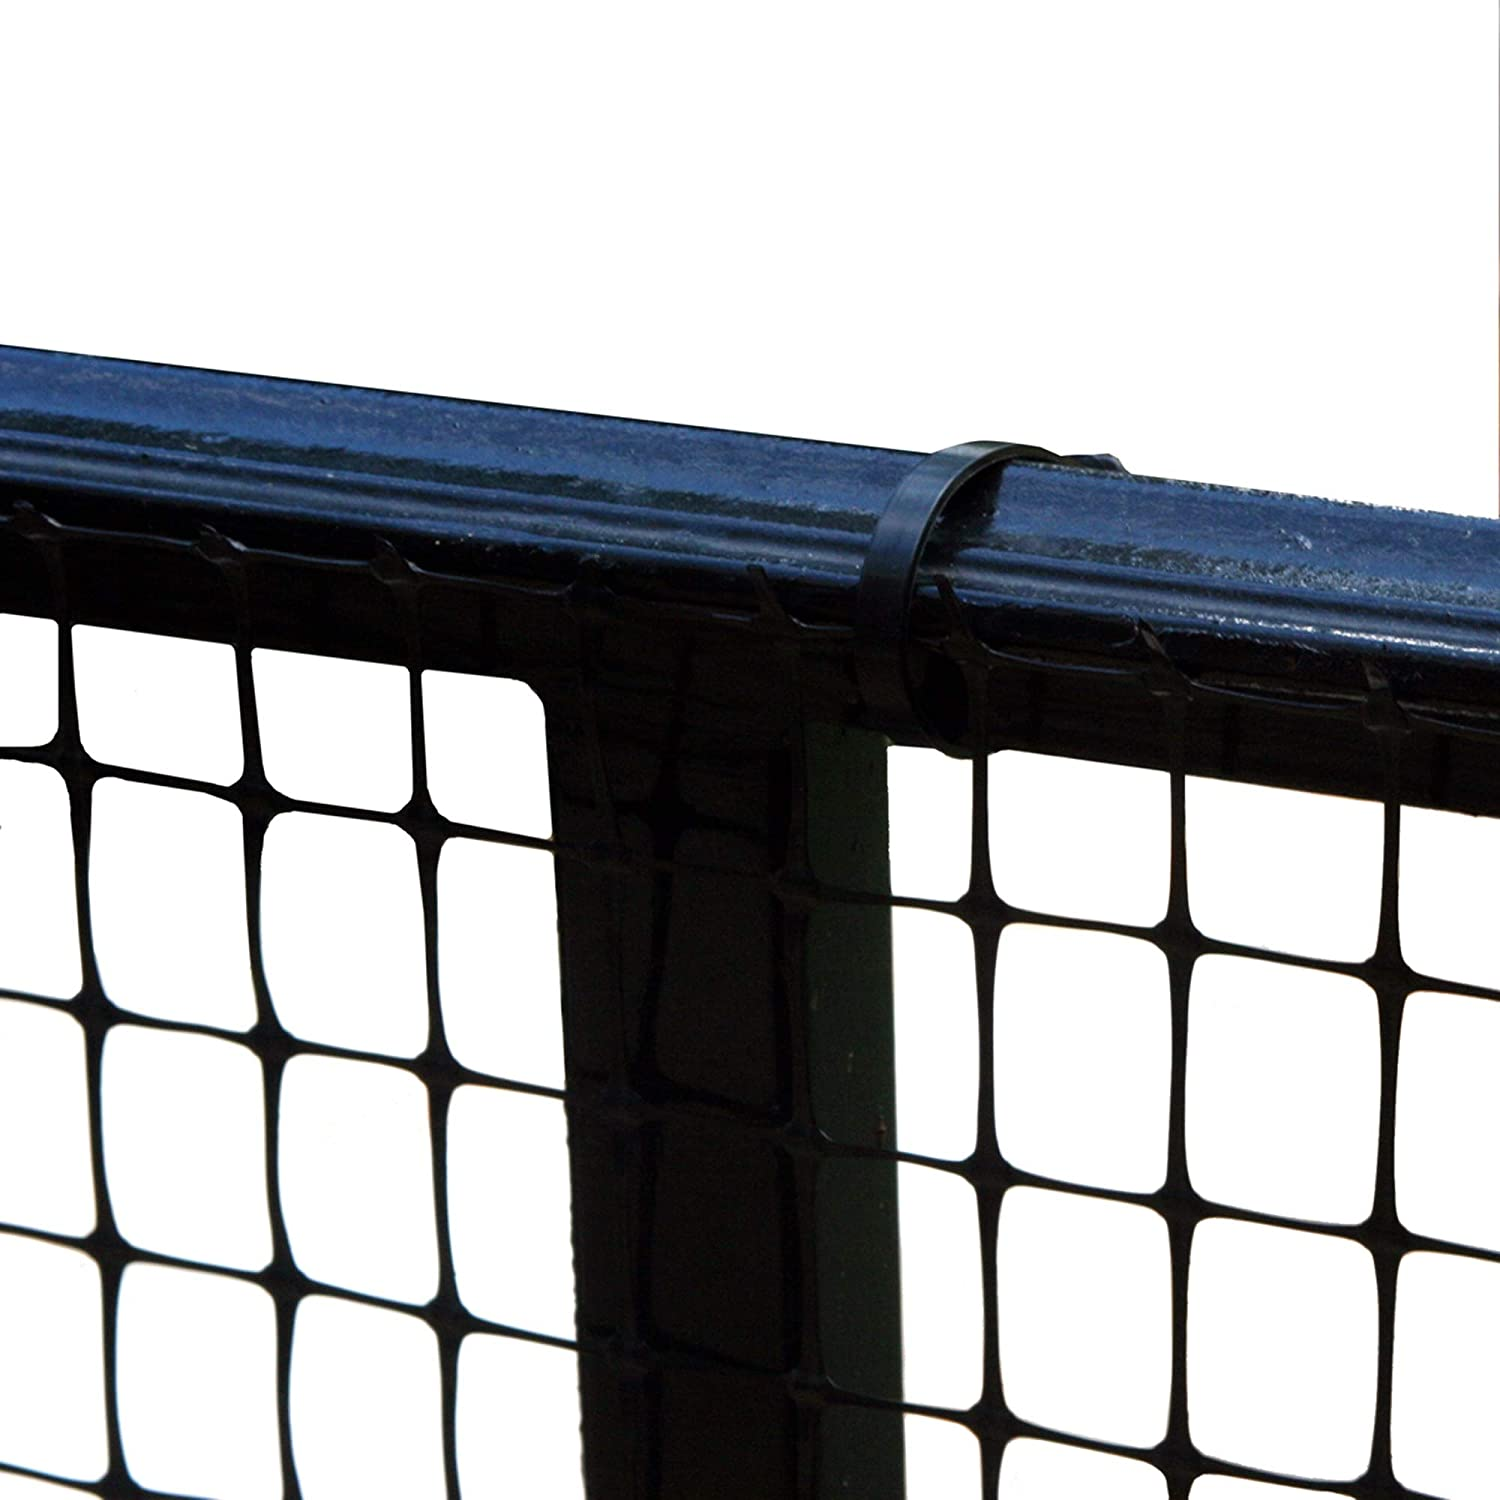 Cardinal Gates Heavy-Duty Outdoor Deck Netting, Black, 15', Safety Net and Deck Netting for Pets and Children